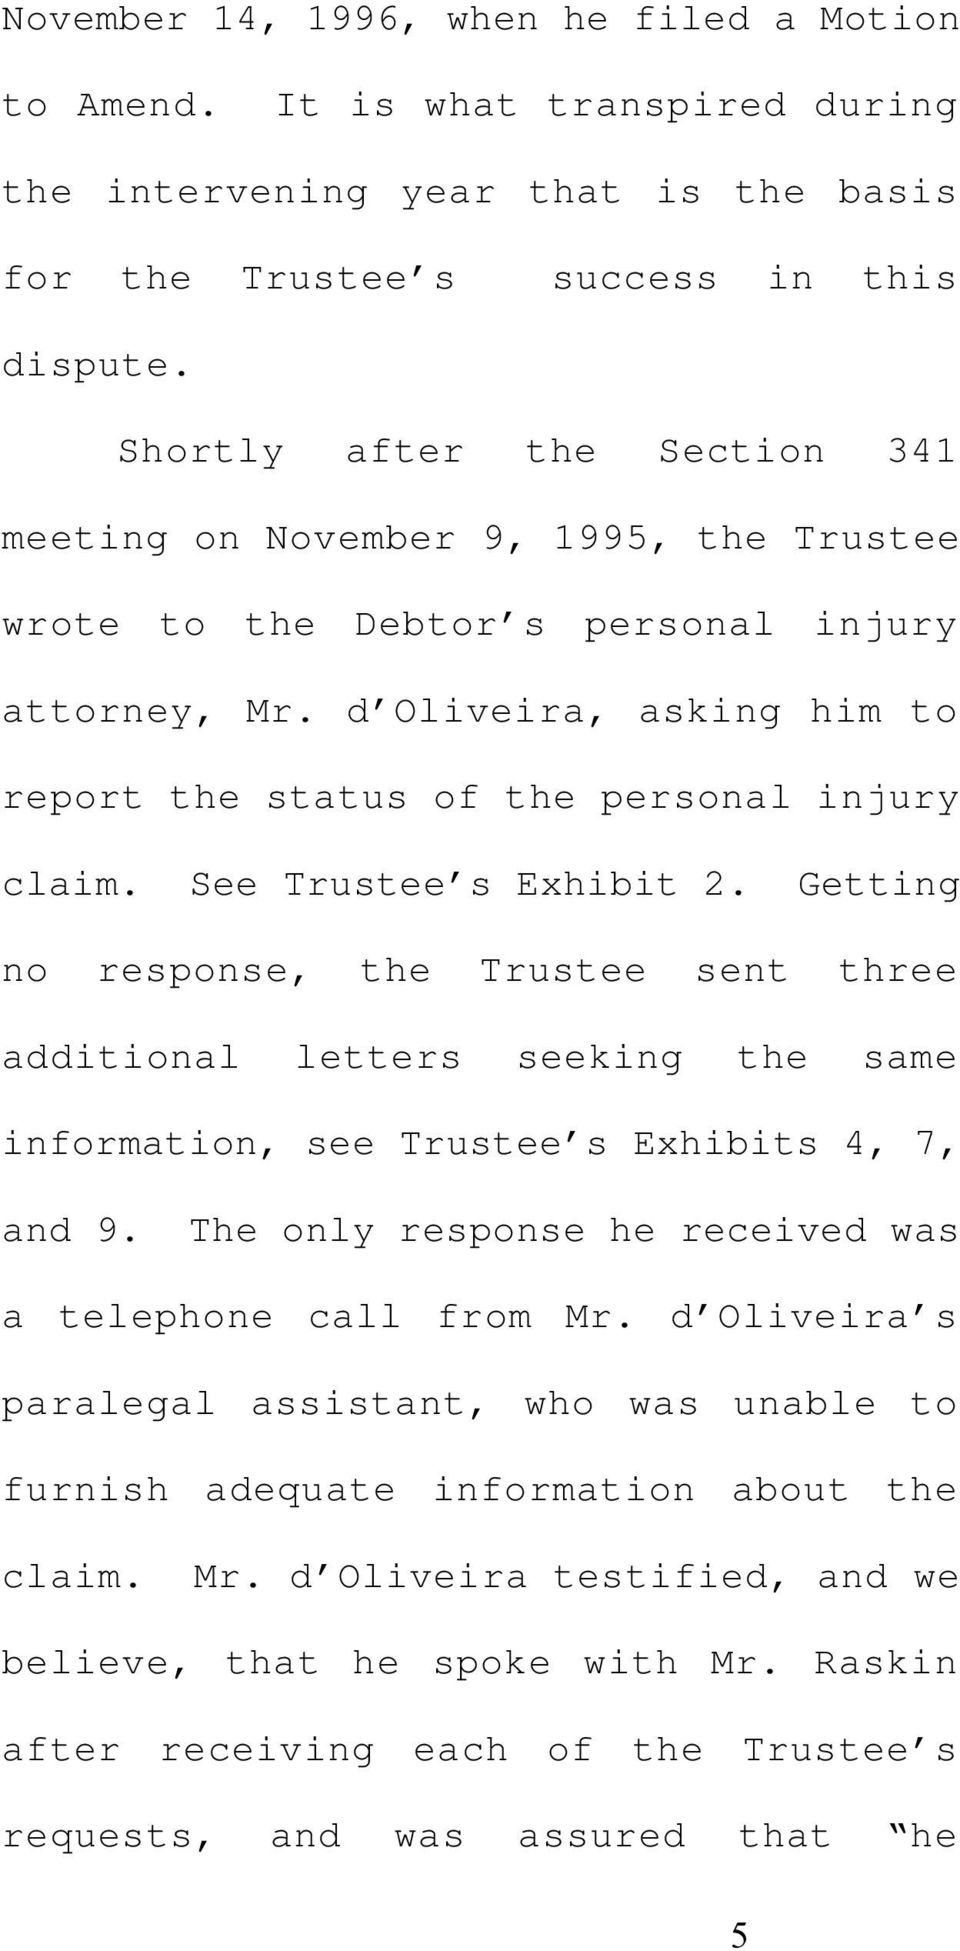 See Trustee s Exhibit 2. Getting no response, the Trustee sent three additional letters seeking the same information, see Trustee s Exhibits 4, 7, and 9.